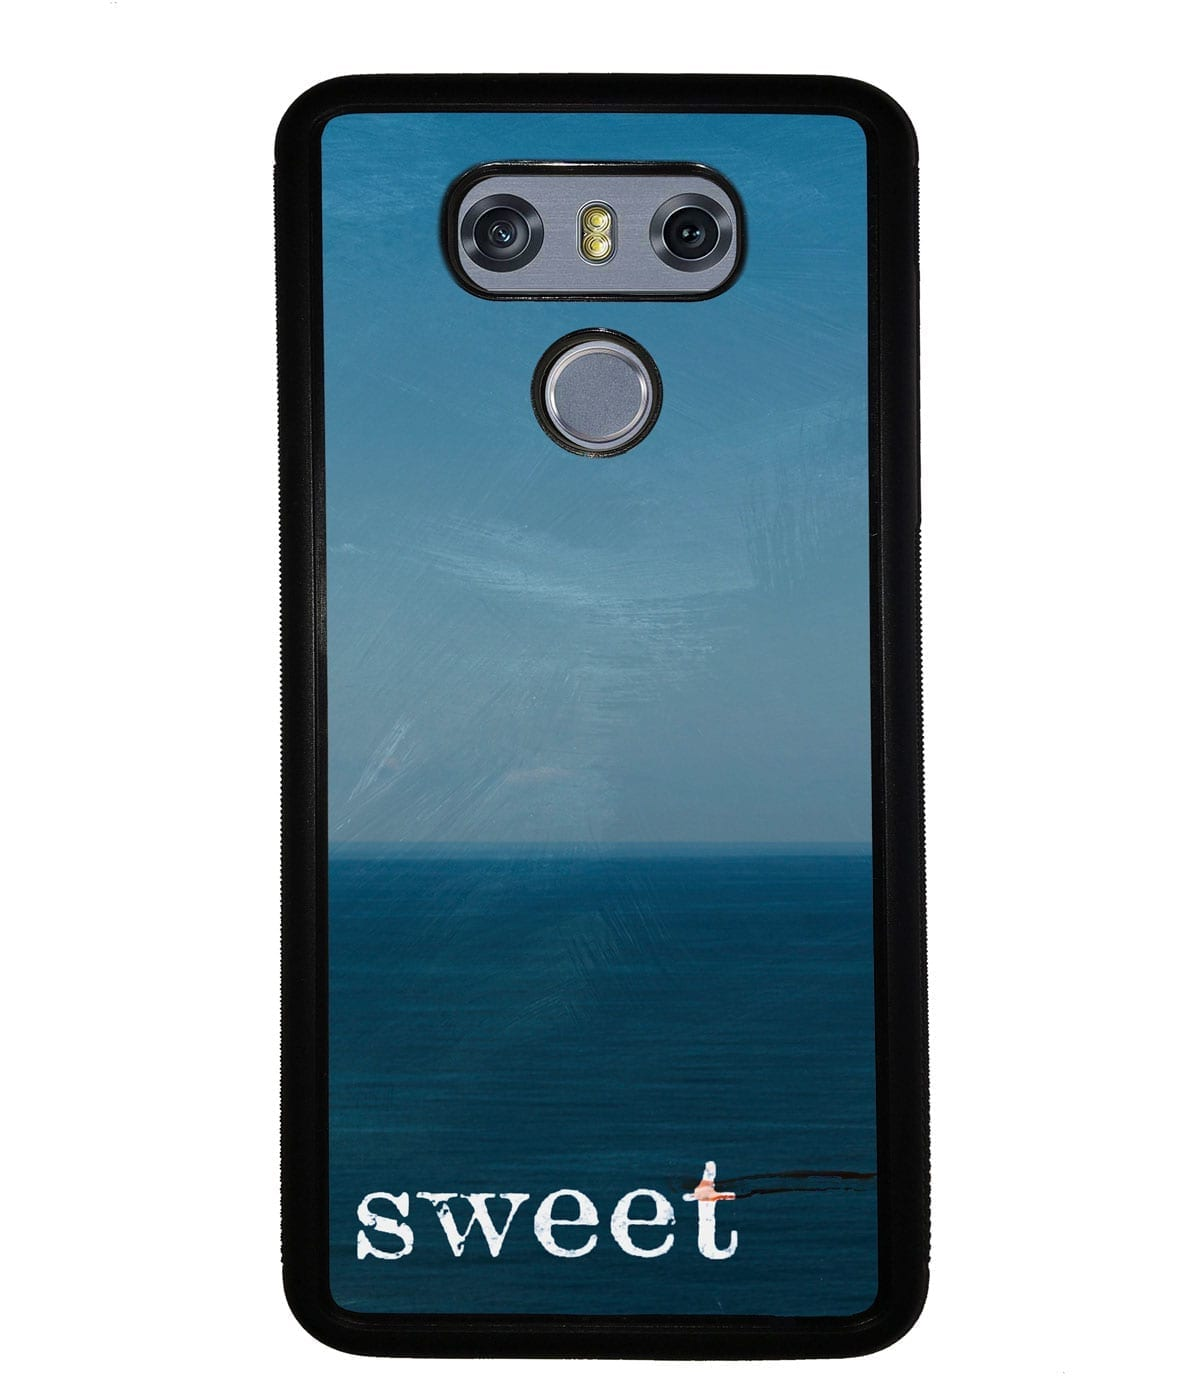 Sweet Phone Case (LG)